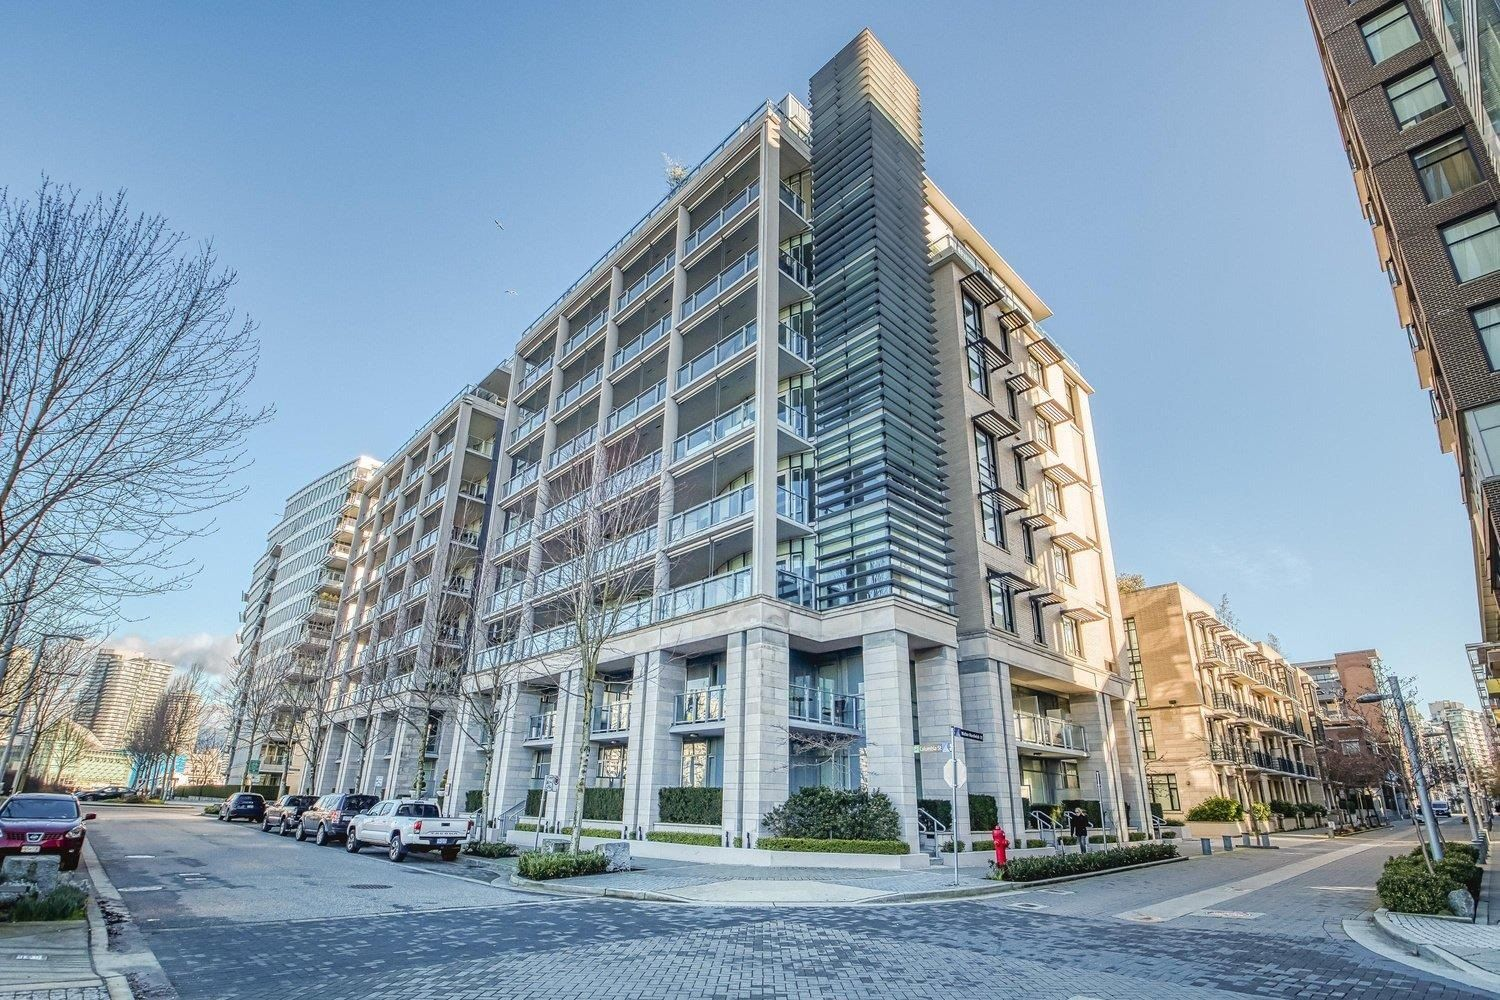 Main Photo: 310 1616 COLUMBIA Street in Vancouver: False Creek Condo for sale (Vancouver West)  : MLS®# R2615795